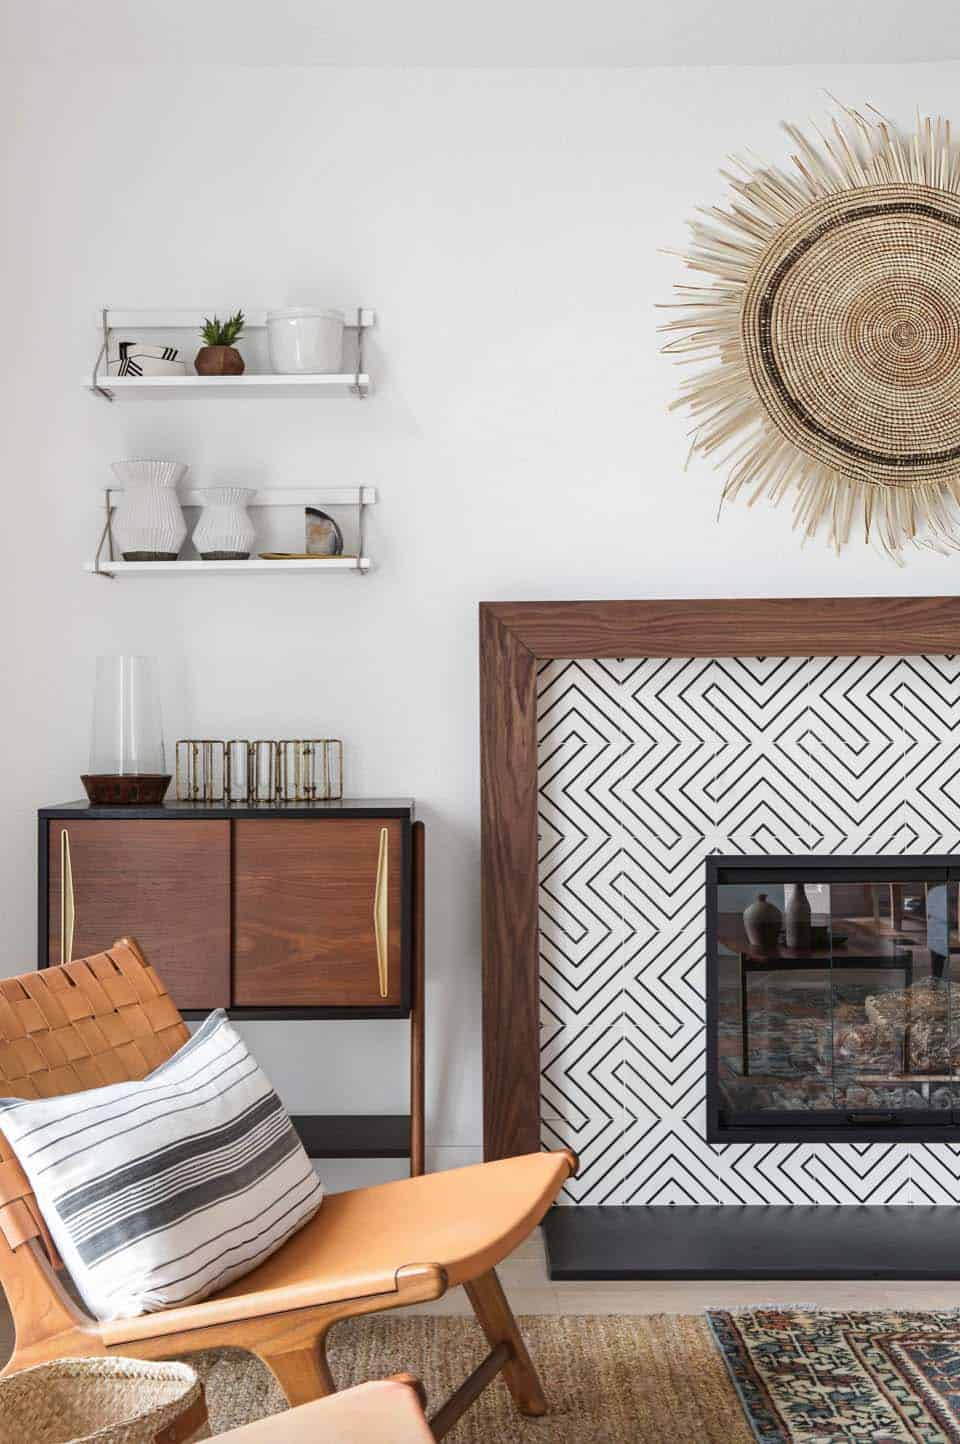 California Eclectic Home-Lindye Galloway Interiors-03-1 Kindesign